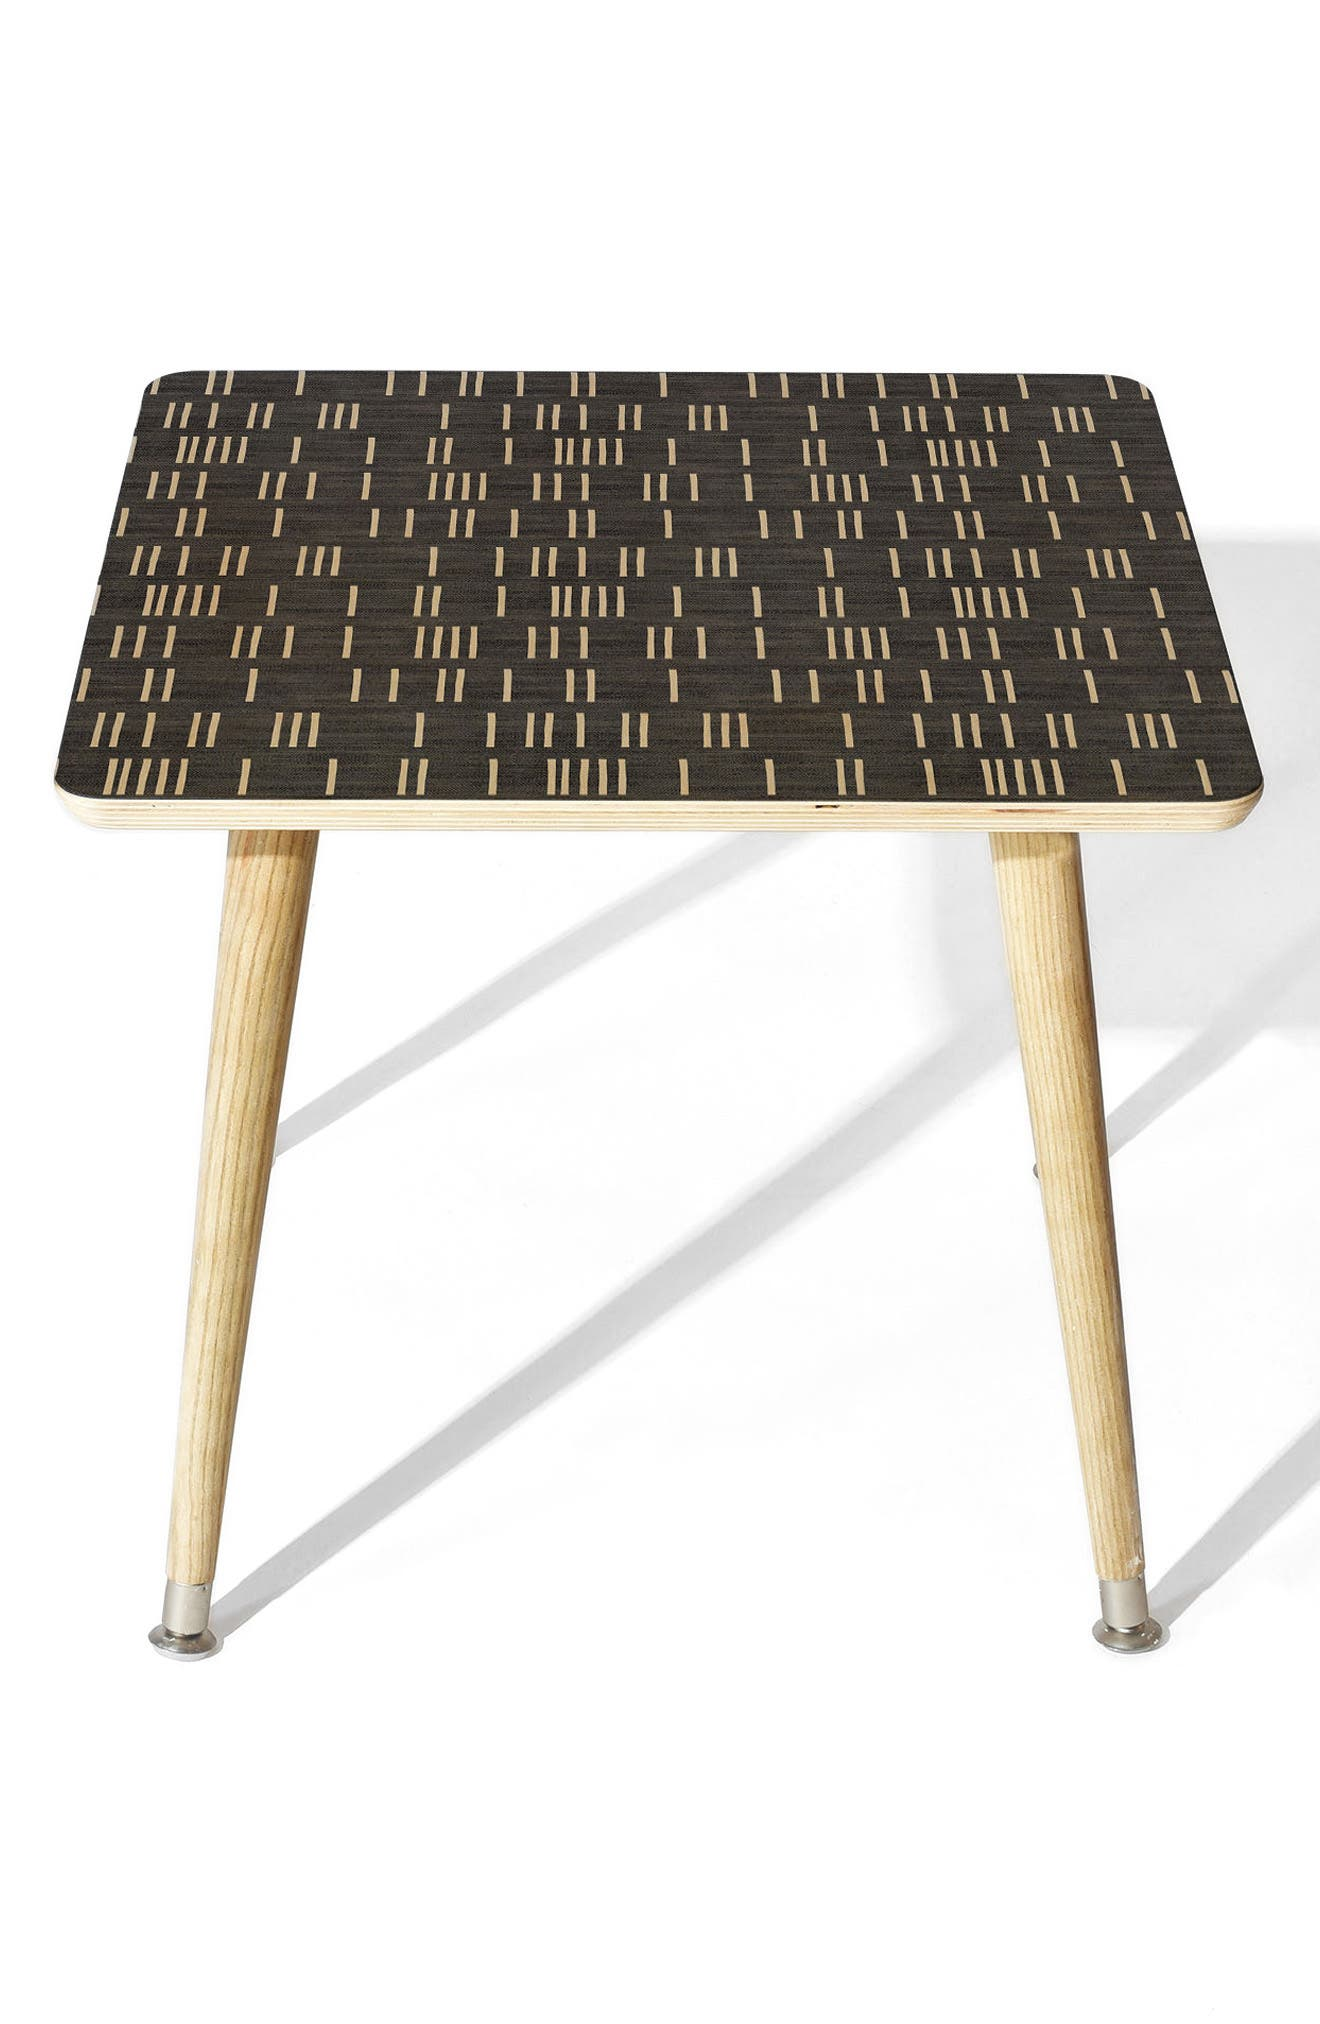 Main Image - Deny Designs Mudcloth Side Table